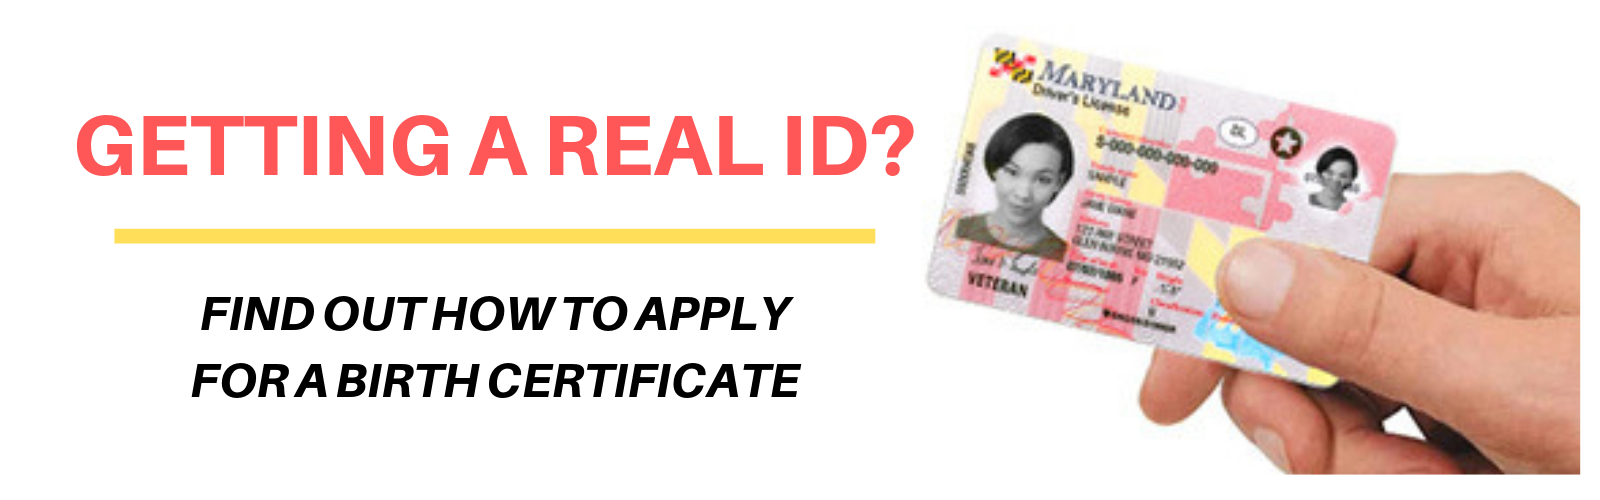 Getting a REAL ID? Find out how to apply for a birth certificate